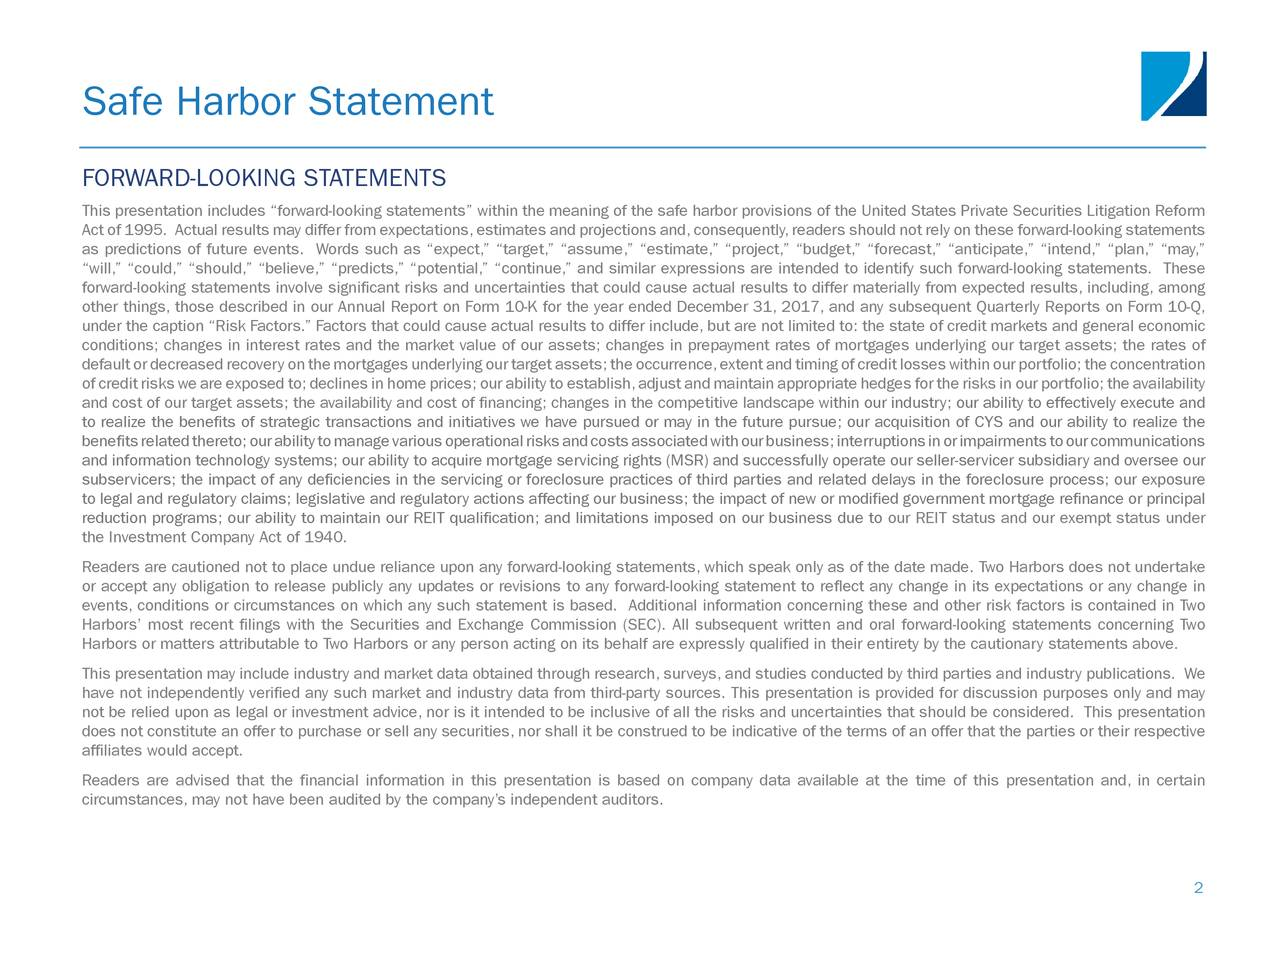 """FORWARD-LOOKING STATEMENTS This presentation includes """"forward-looking statements"""" within the meaning of the safe harbor provisions of the United States Private Securities Litigation Reform Act of 1995. Actual results may differ from expectations,estimates and projections and,consequently,readers should not rely on these forward-looking statements as predictions of future events. Words such as """"expect,"""" """"target,"""" """"assume,"""" """"estimate,"""" """"project,"""" """"budget,"""" """"forecast,"""" """"anticipate,"""" """"intend,"""" """"plan,"""" """"may,"""" """"will,"""" """"could,"""" """"should,"""" """"believe,"""" """"predicts,"""" """"potential,"""" """"continue,"""" and similar expressions are intended to identify such forward-looking statements. These forward-looking statements involve significant risks and uncertainties that could cause actual results to differ materially from expected results, including, among other things, those described in our Annual Report on Form 10-K for the year ended December 31, 2017, and any subsequent Quarterly Reports on Form 10-Q, under the caption """"Risk Factors."""" Factors that could cause actual results to differ include, but are not limited to: the state of credit markets and general economic conditions; changes in interest rates and the market value of our assets; changes in prepayment rates of mortgages underlying our target assets; the rates of defaultordecreasedrecoveryonthemortgagesunderlyingourtargetassets;theoccurrence,extentandtimingofcreditlosseswithinourportfolio;theconcentration of credit risks we are exposed to; declines in home prices; our ability to establish,adjust and maintain appropriate hedges for the risks in our portfolio; the availability and cost of our target assets; the availability and cost of financing; changes in the competitive landscape within our industry; our ability to effectively execute and to realize the benefits of strategic transactions and initiatives we have pursued or may in the future pursue; our acquisition of CYS and our ability to realize the benefitsrelatedthereto;ourabilityt"""